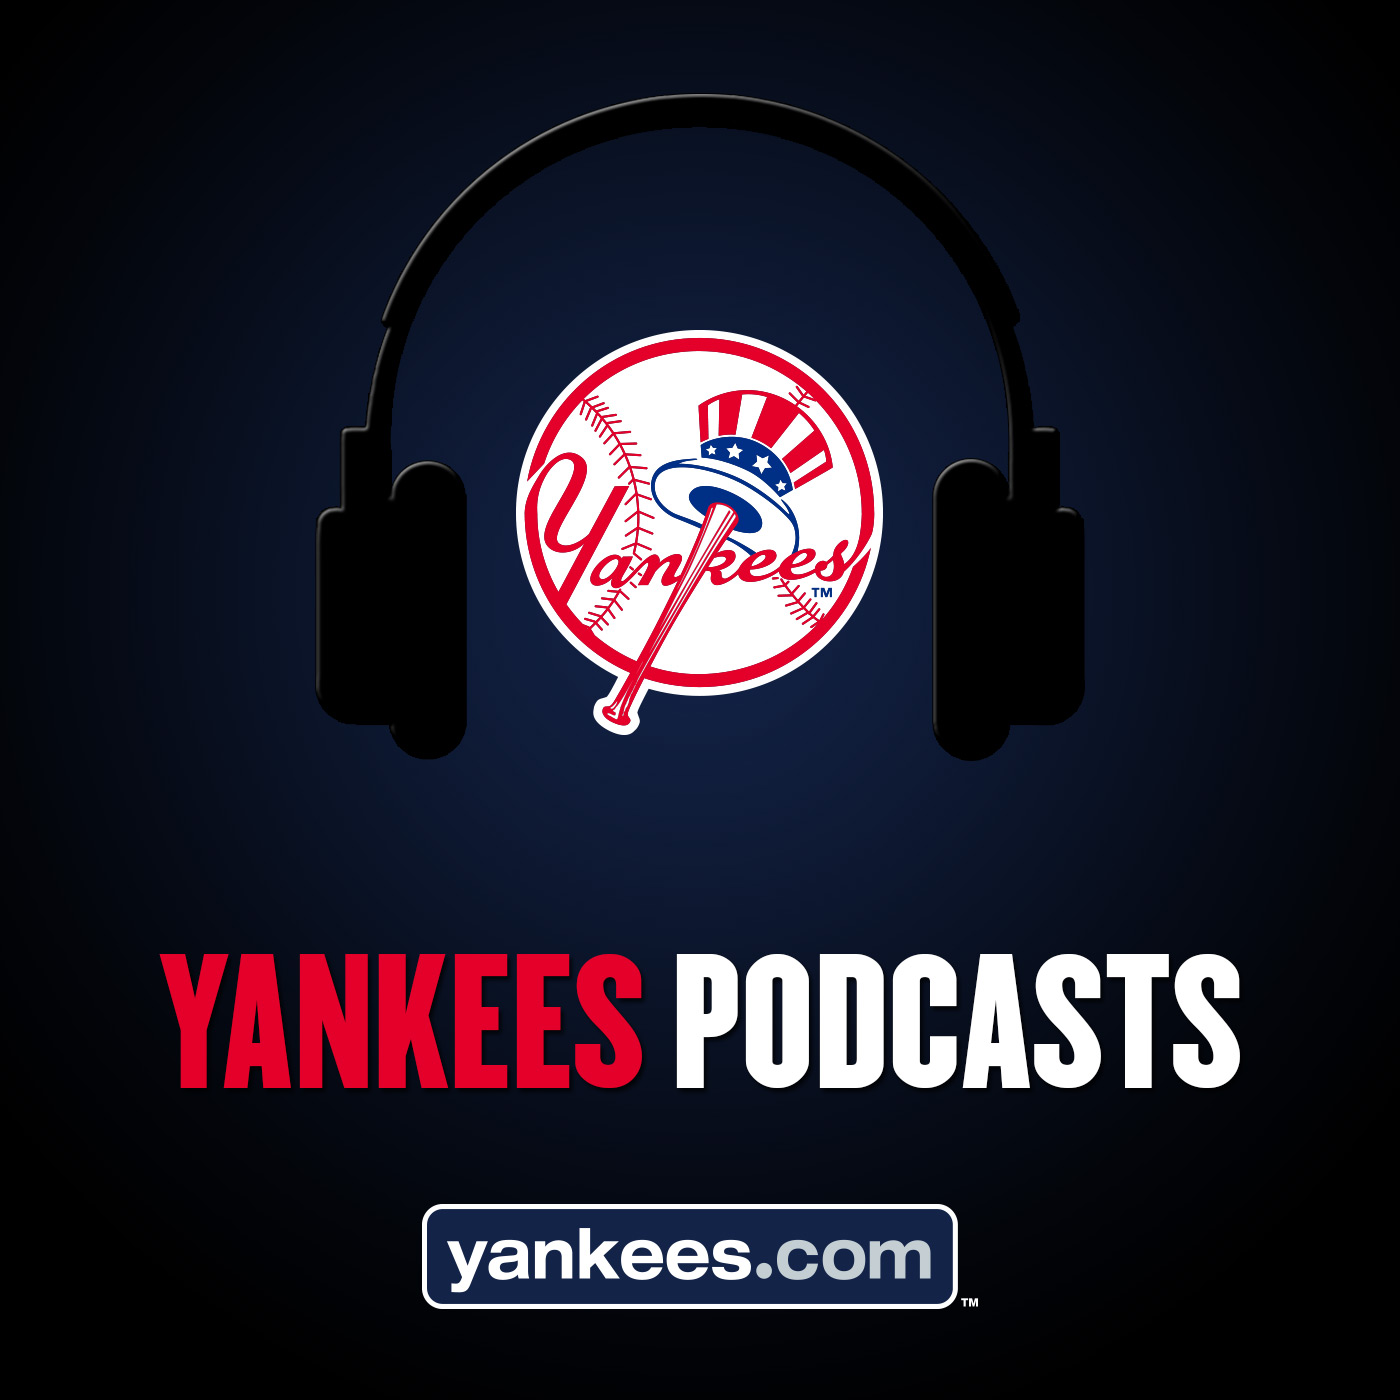 New York Yankees Podcast